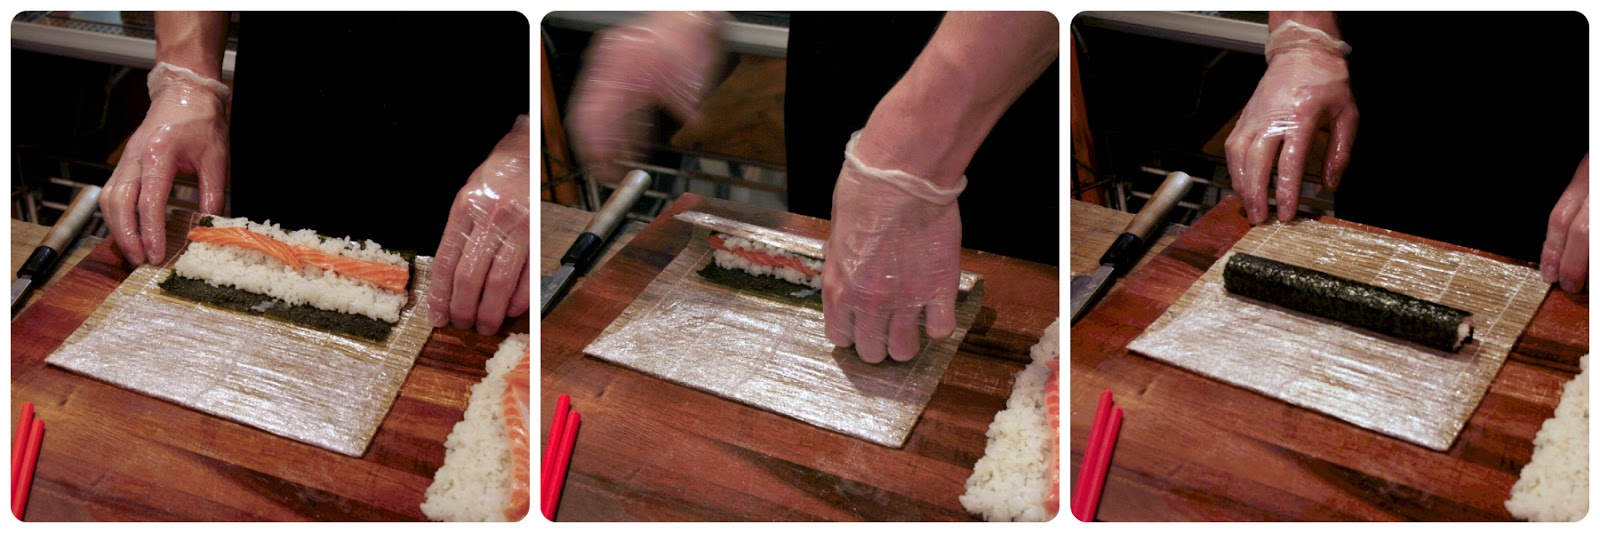 Jack, owner of Zero juice and sushi in Berkhamsted, taught us how to roll different types of sushi